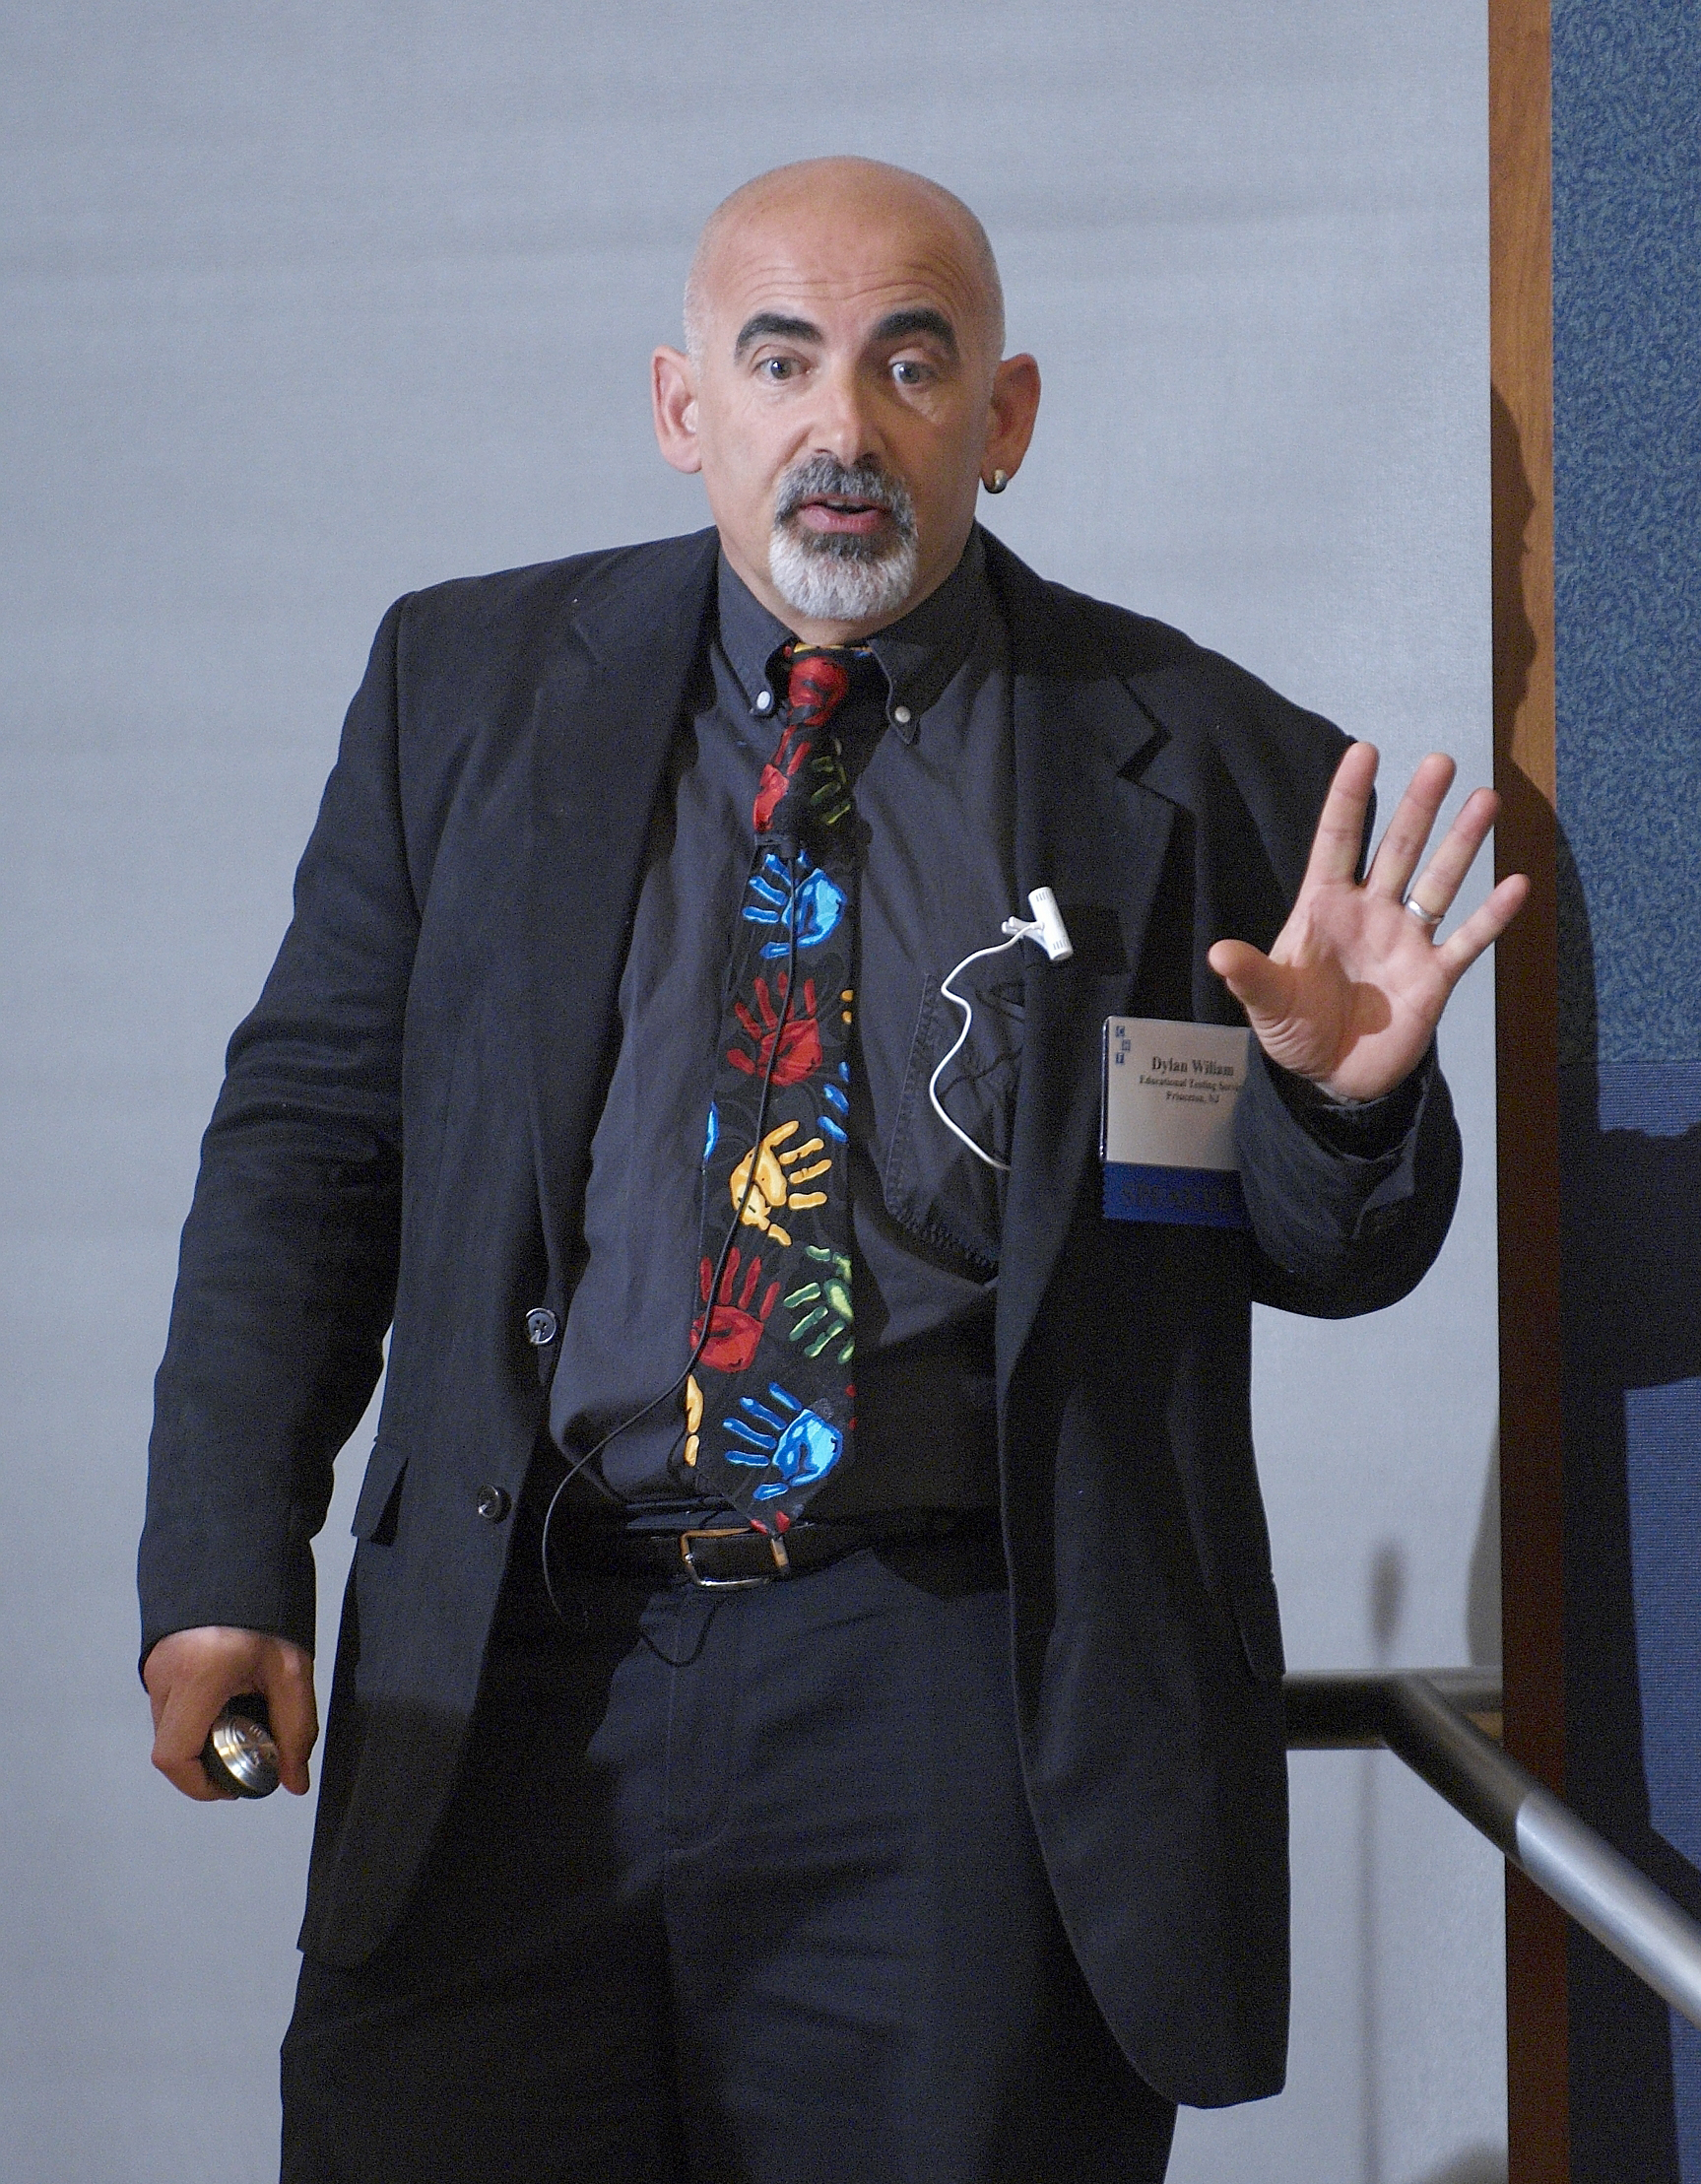 Dylan Wiliam in 2006